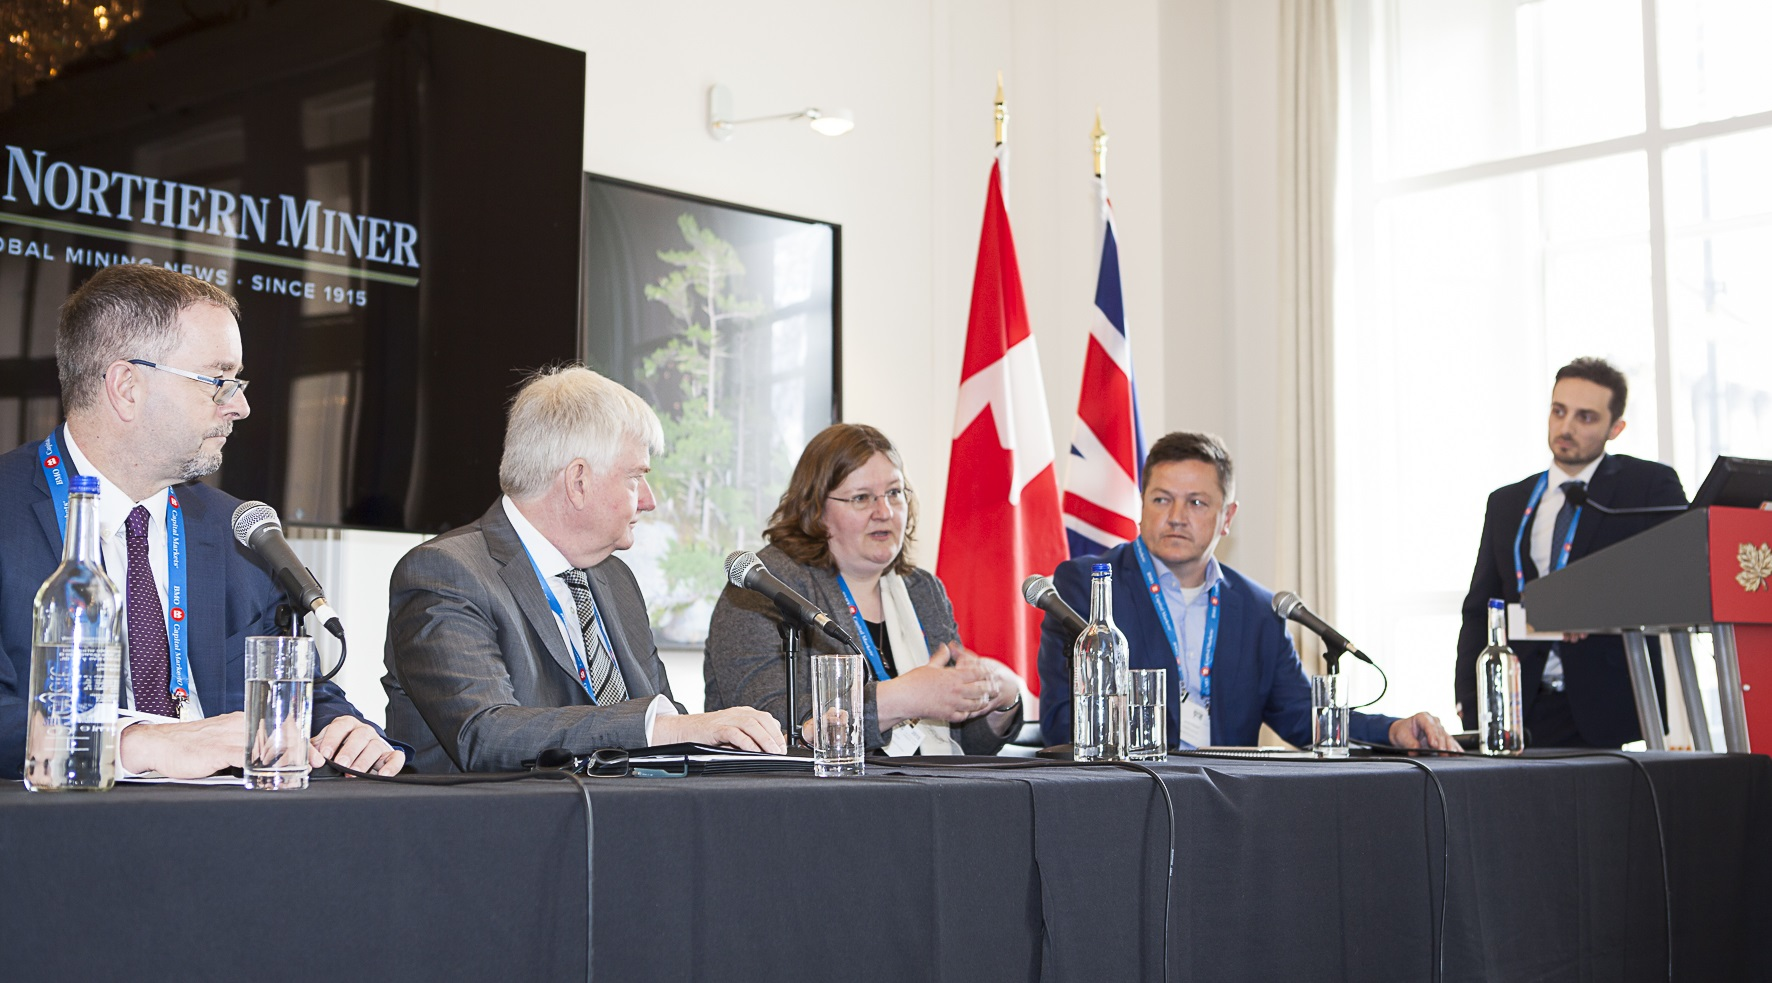 At the Northern Miner's Canadian Mining Symposium in London, U.K., from left: Nemaska Lithium president and CEO Guy Bourassa; Fortune Minerals president and CEO Robin Goad; CRU Consulting's head of technology metals and energy Rebecca Gordon; Cobalt Blockchain president and COO Lance Hooper; and Northern Miner staff writer and moderator Richard Quarisa. Photo by Martina Lang.